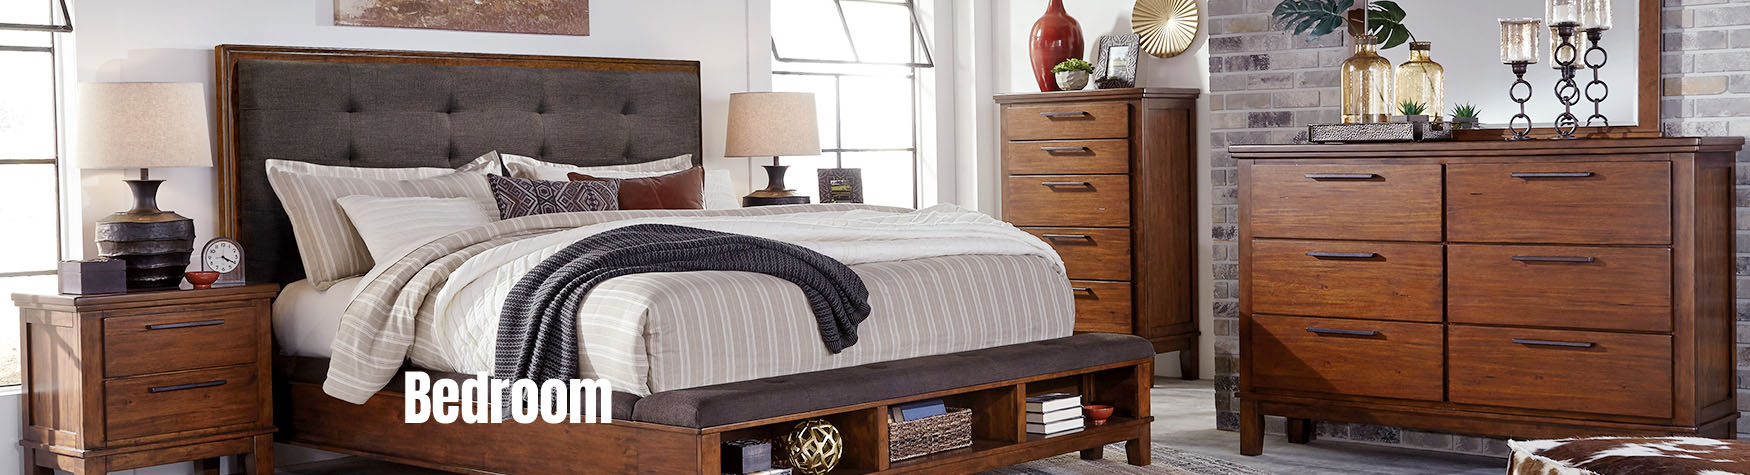 Bedroom - Furniture Direct Now